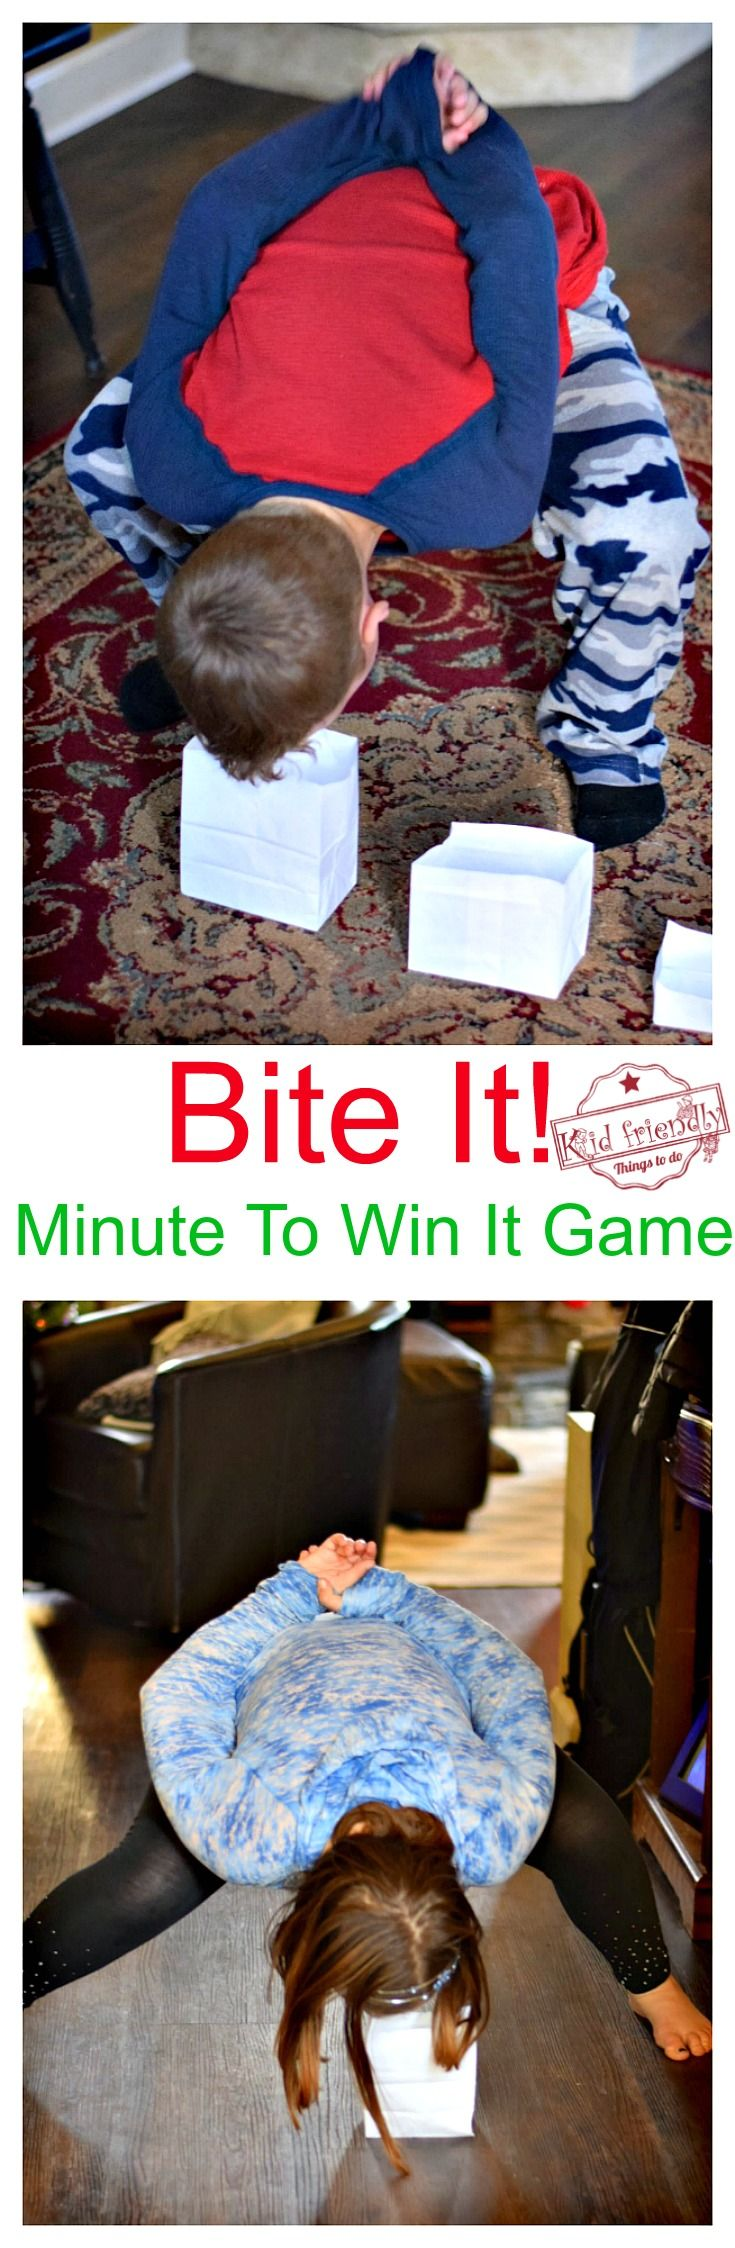 Awesome Minute To Win It Games that are Great for Kids, Teens and Adults - For Your Family Parties!